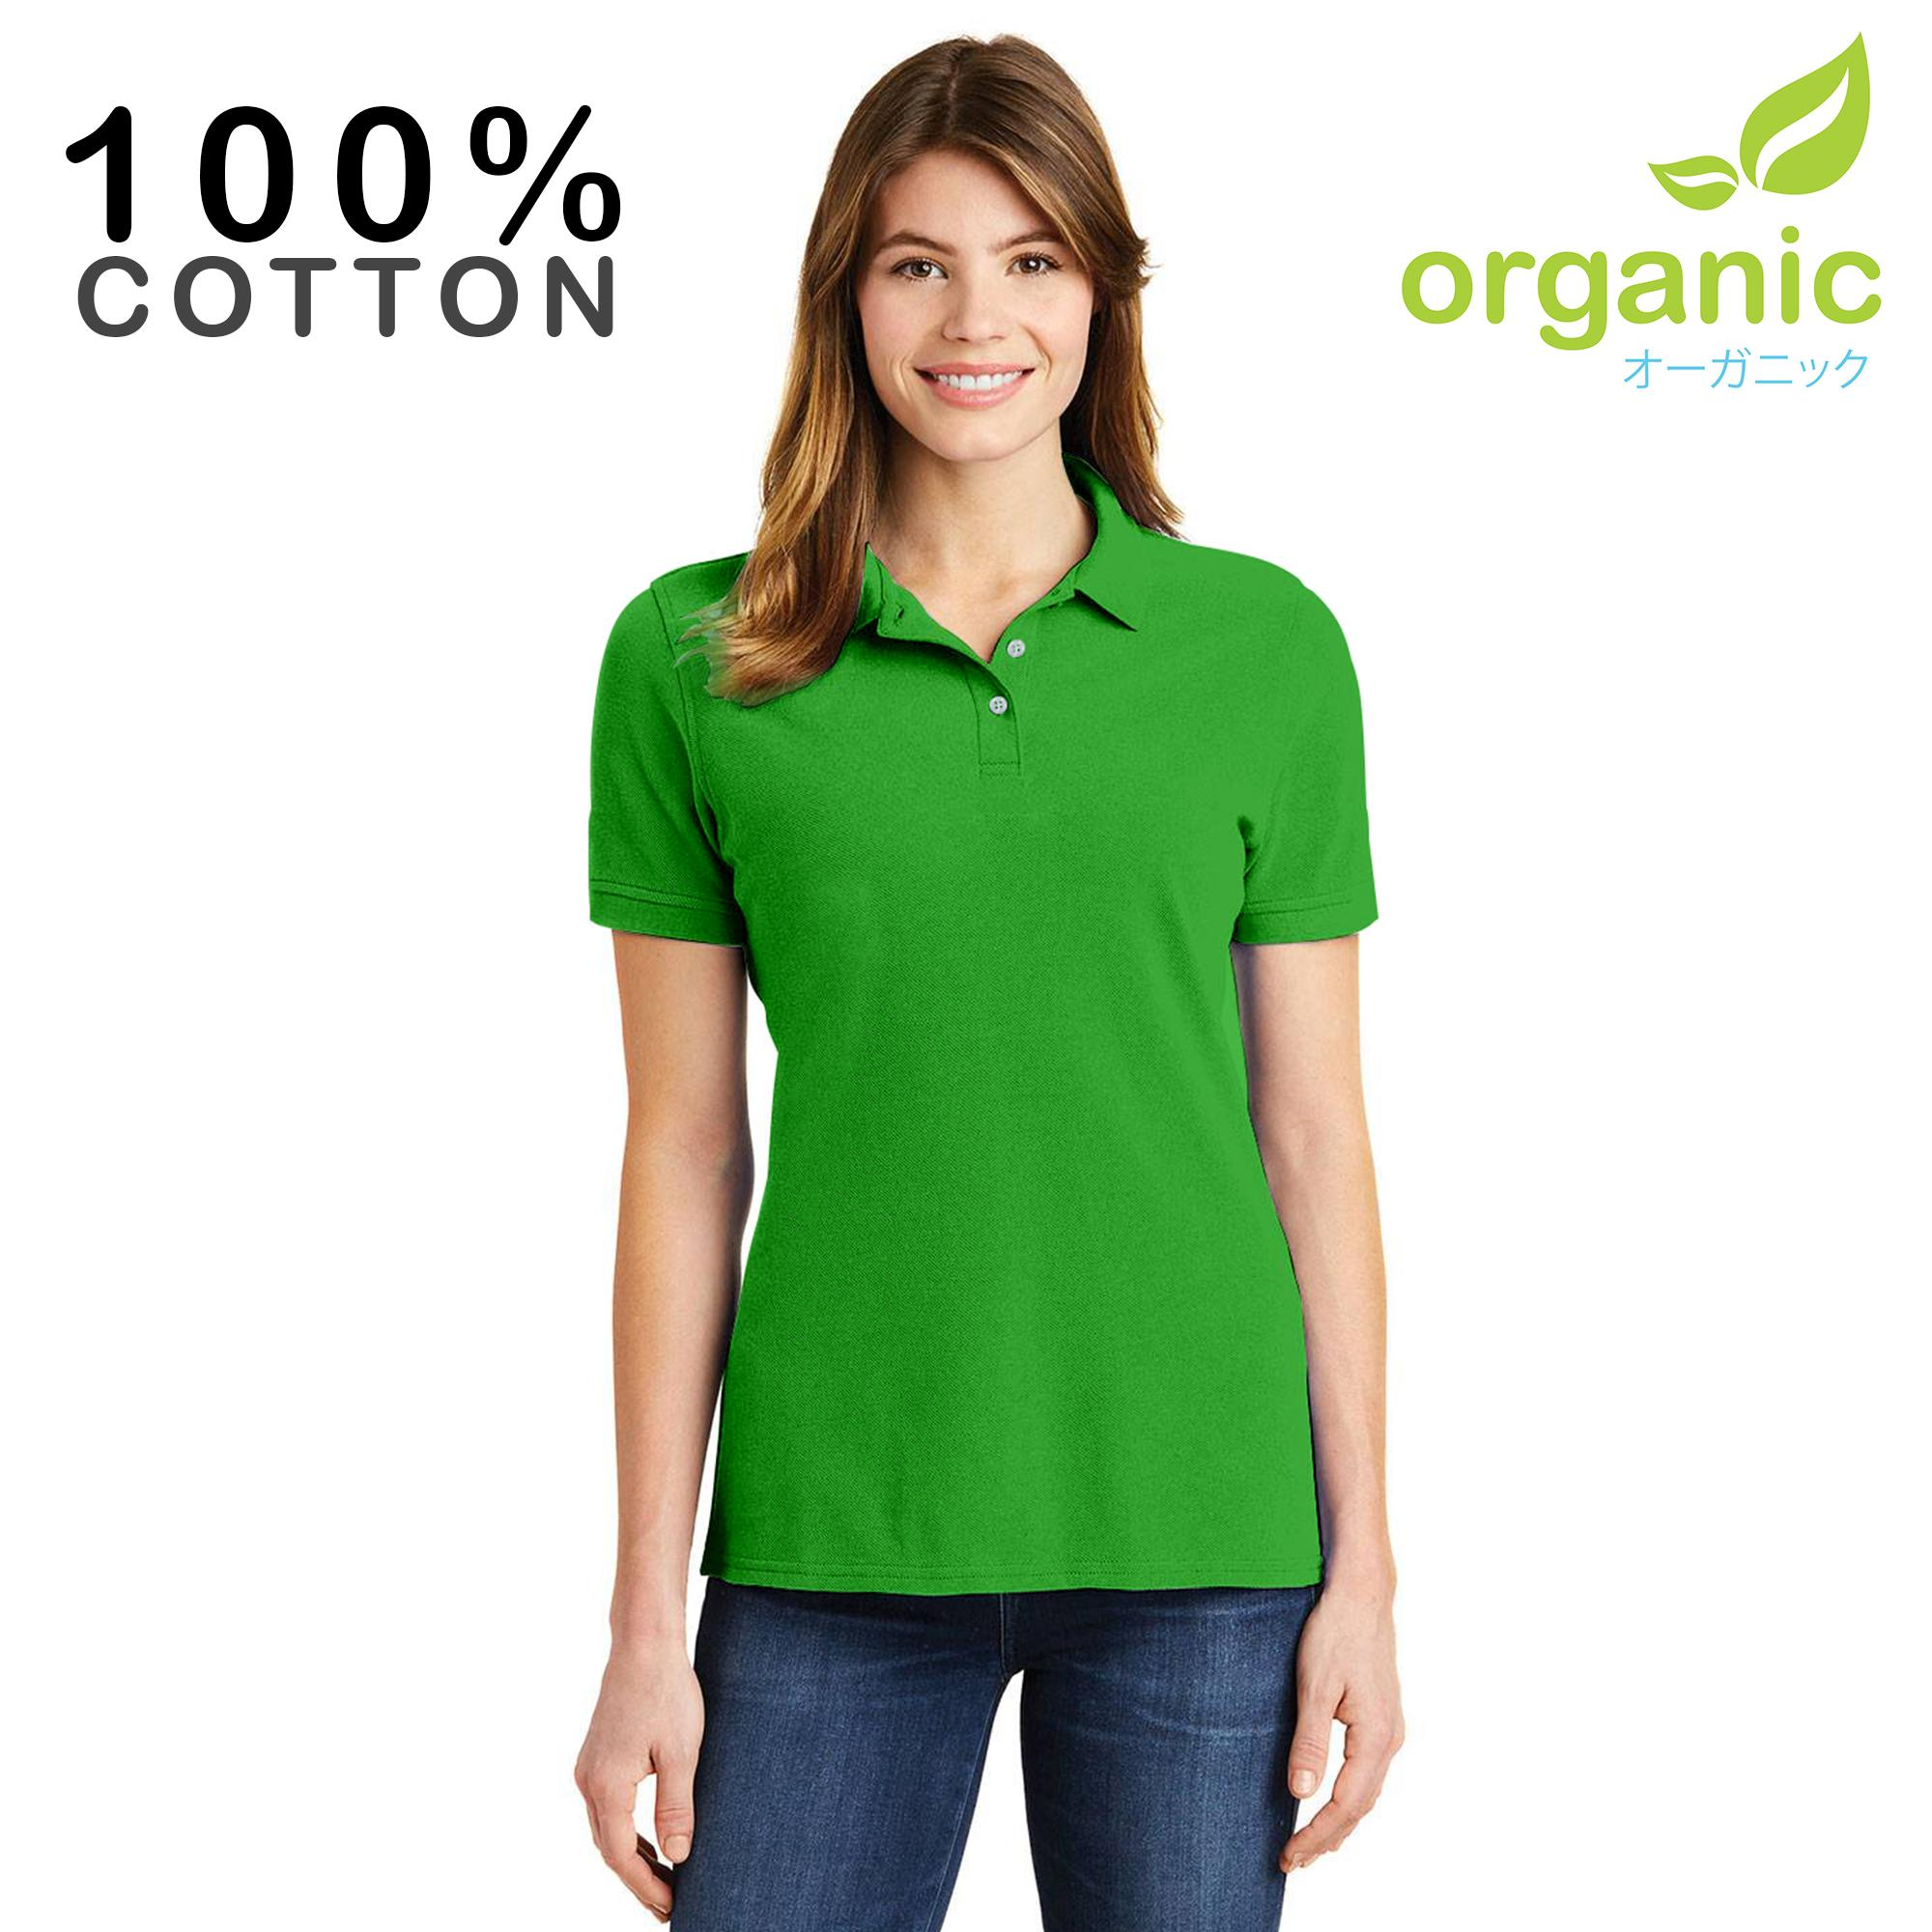 Organic Ladies Pique Polo shirt Fashionable Tees t shirt tshirt shirts  tshirts blouse tops top for bb3bcdc21